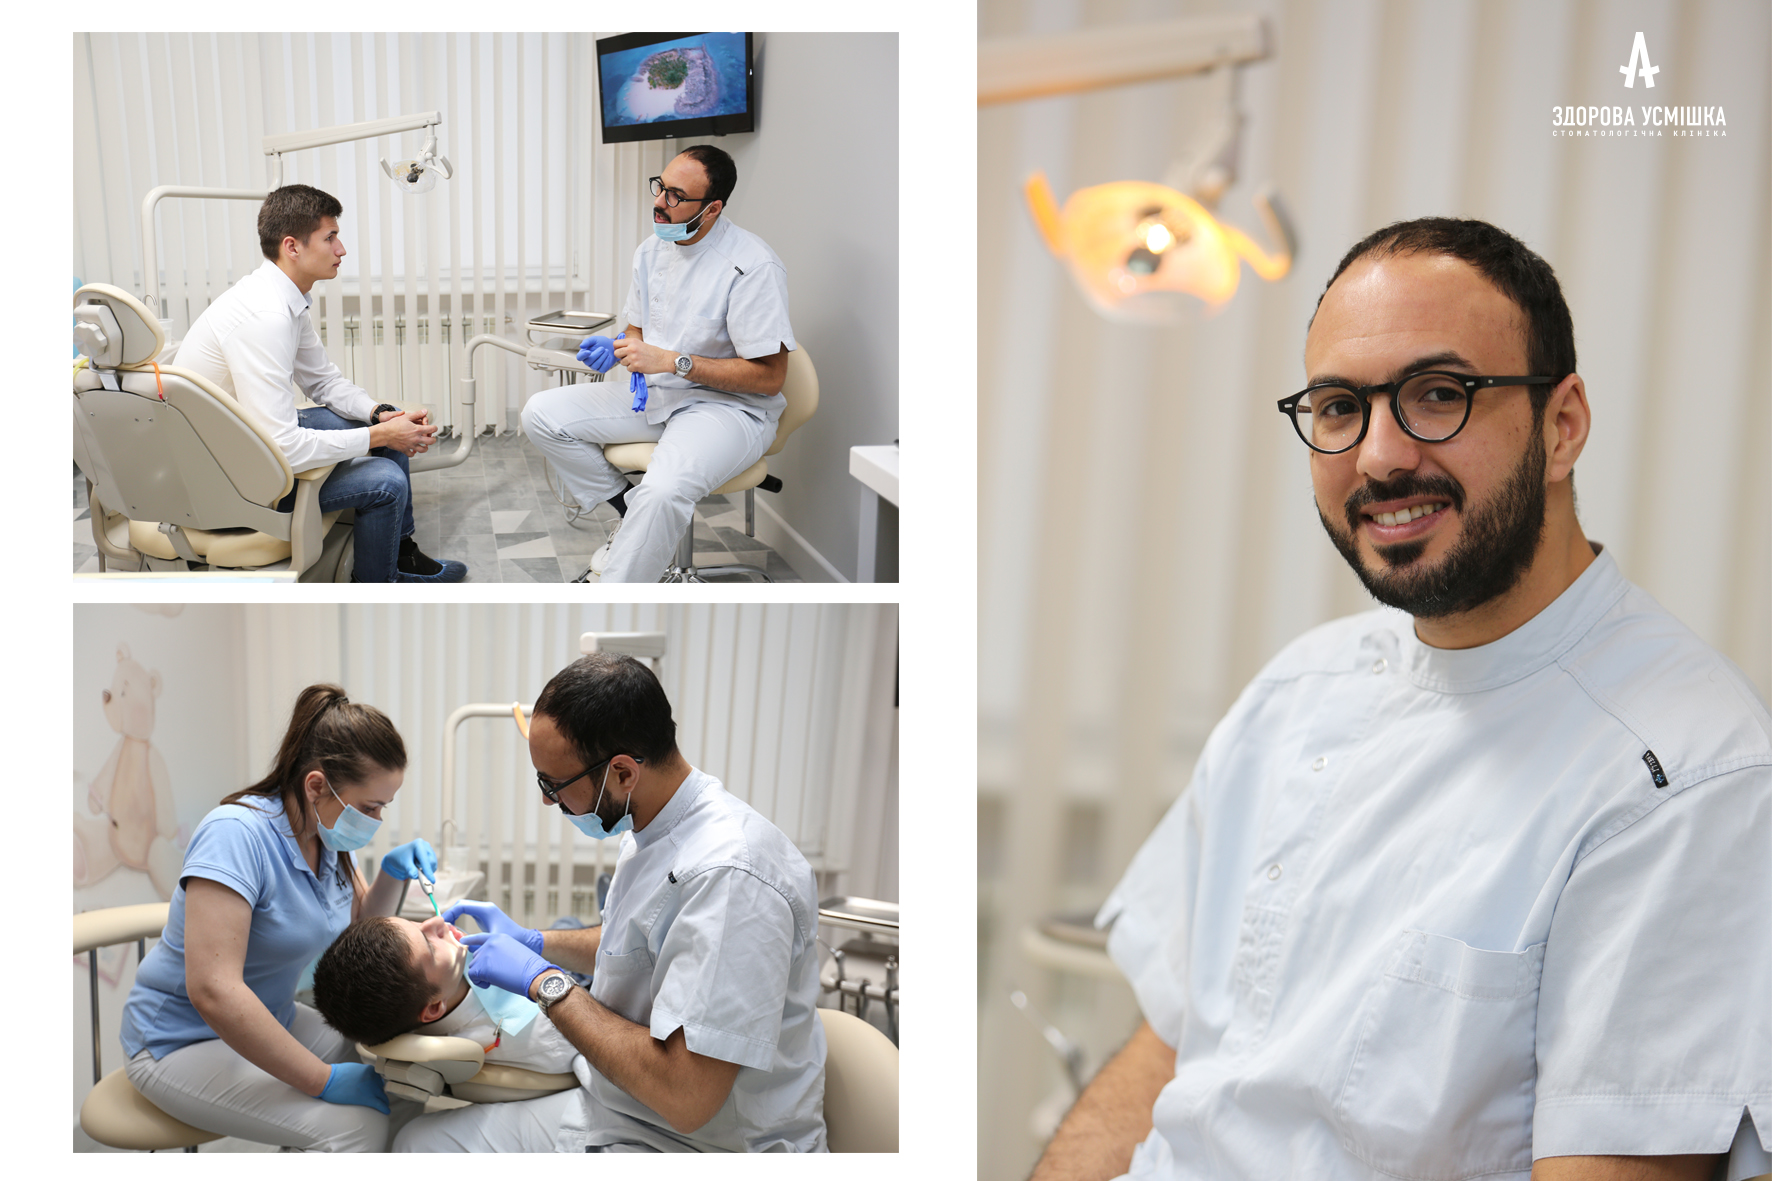 Visit to orthodontist doctor